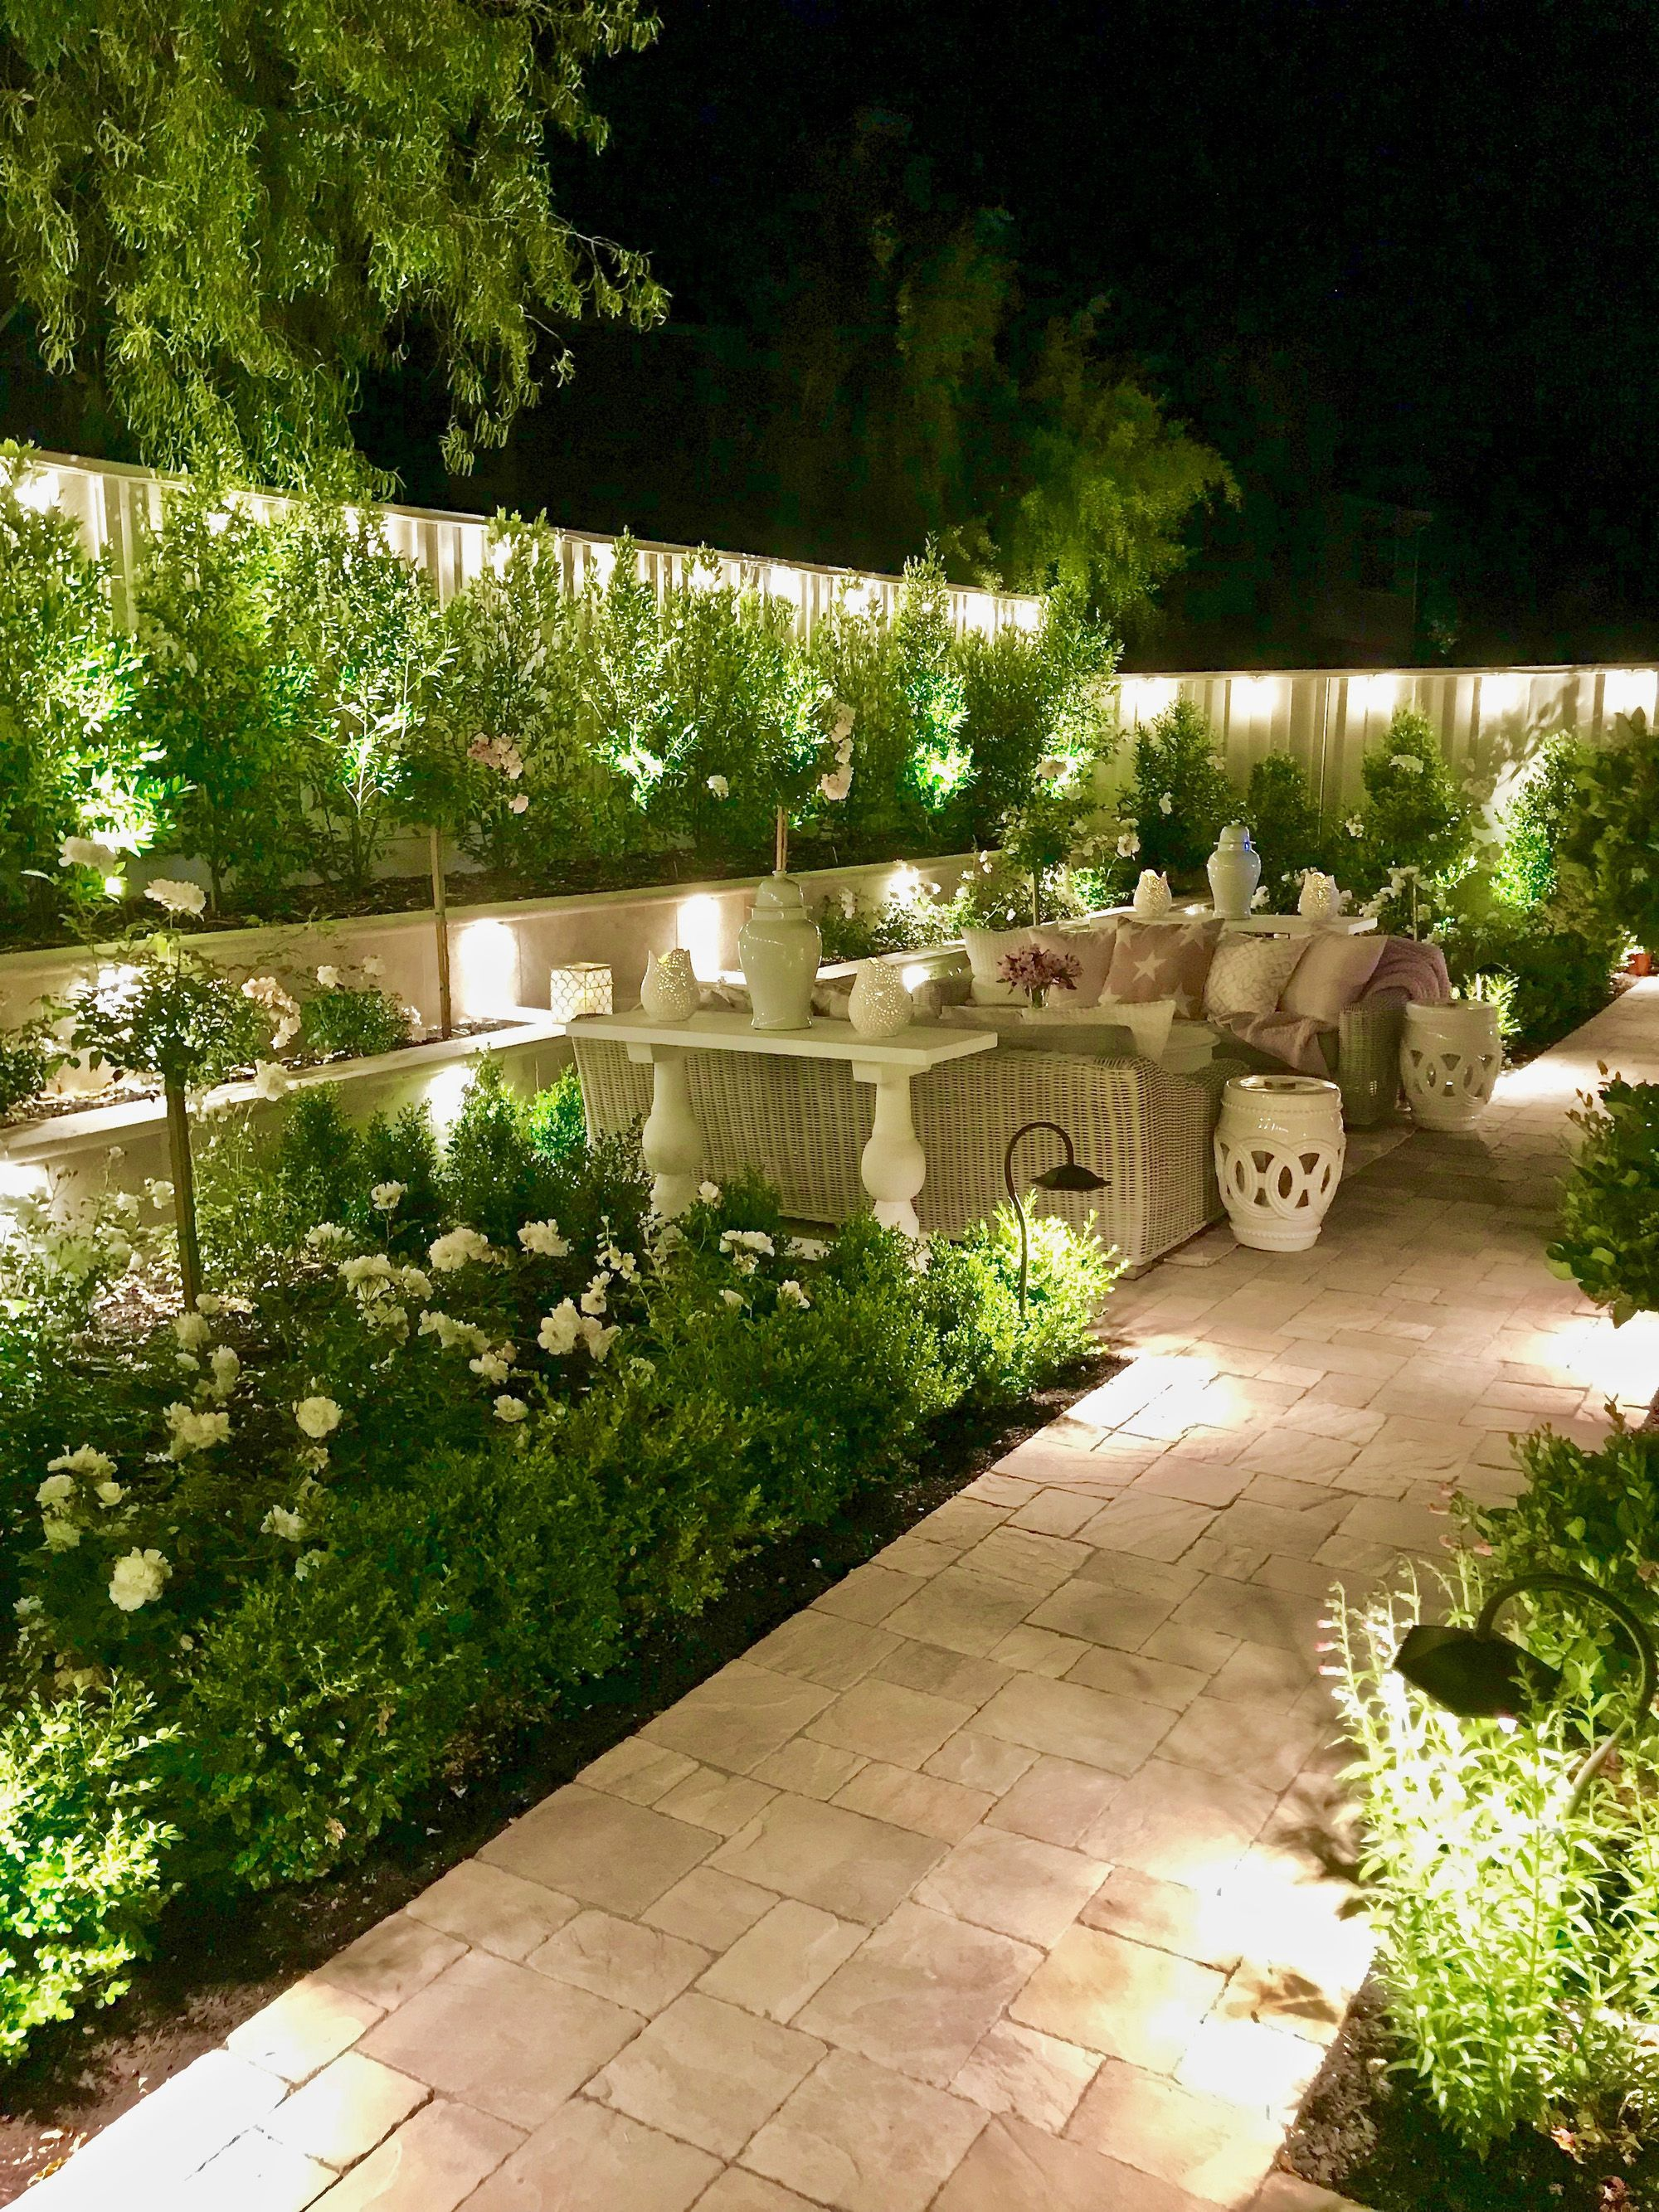 Outdoor Lighting I Linked All Of My Lighting Sources And Info Small Backyard Landscaping Backyard Garden Design Backyard Landscaping